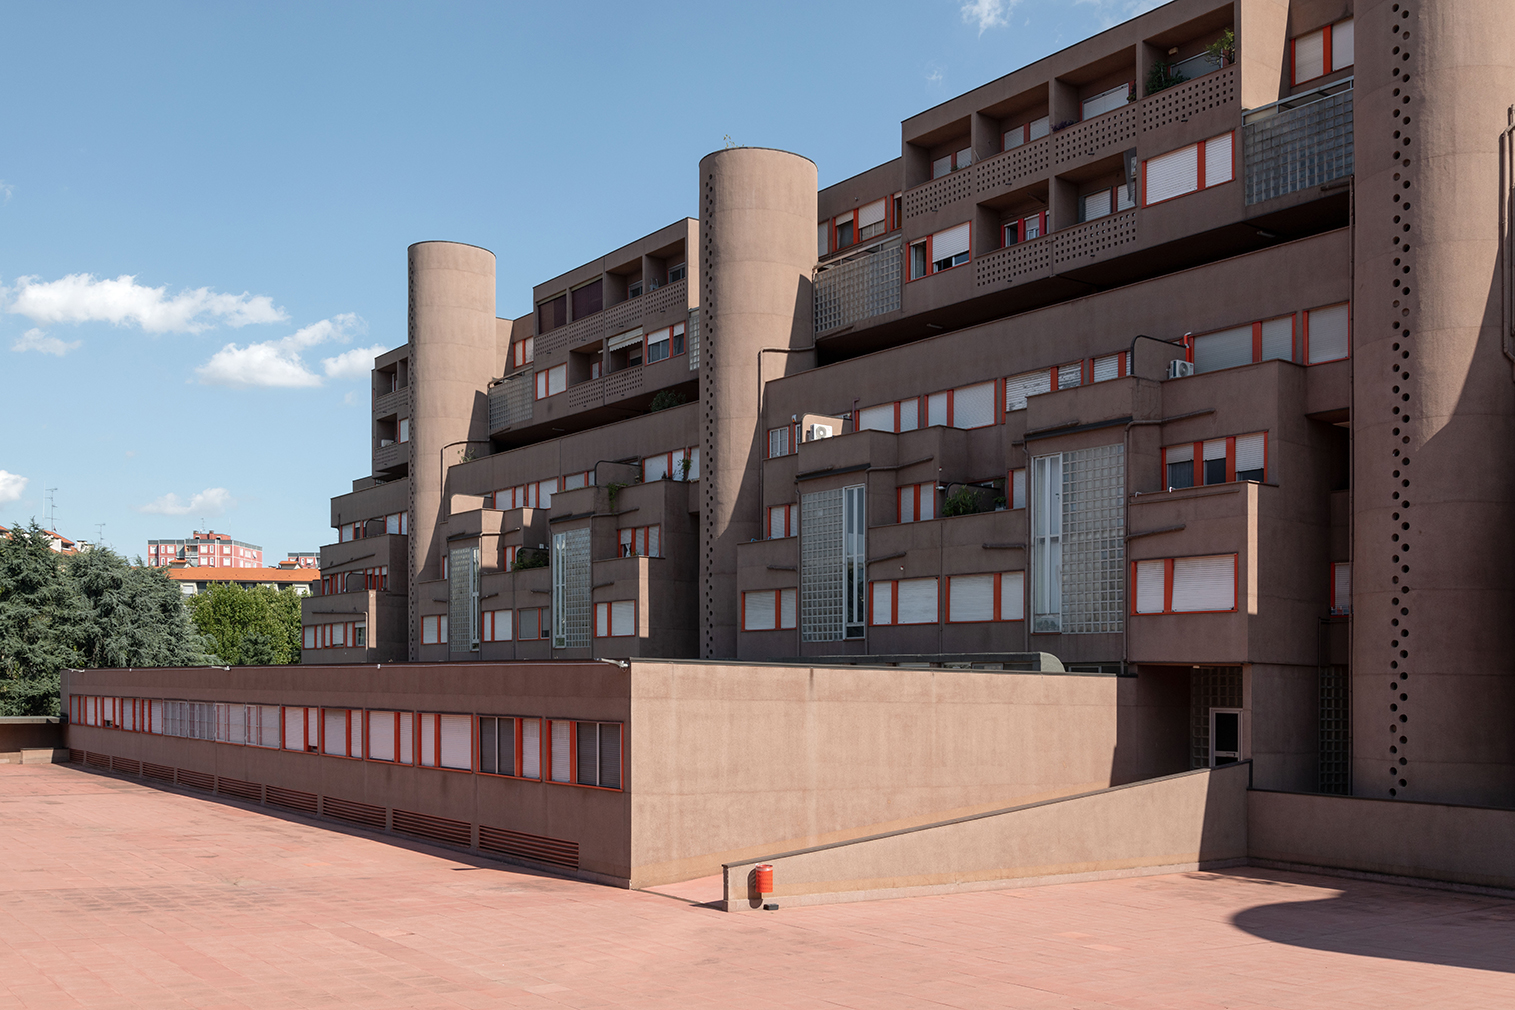 Explore Milan's iconic Monte Amiata housing complex